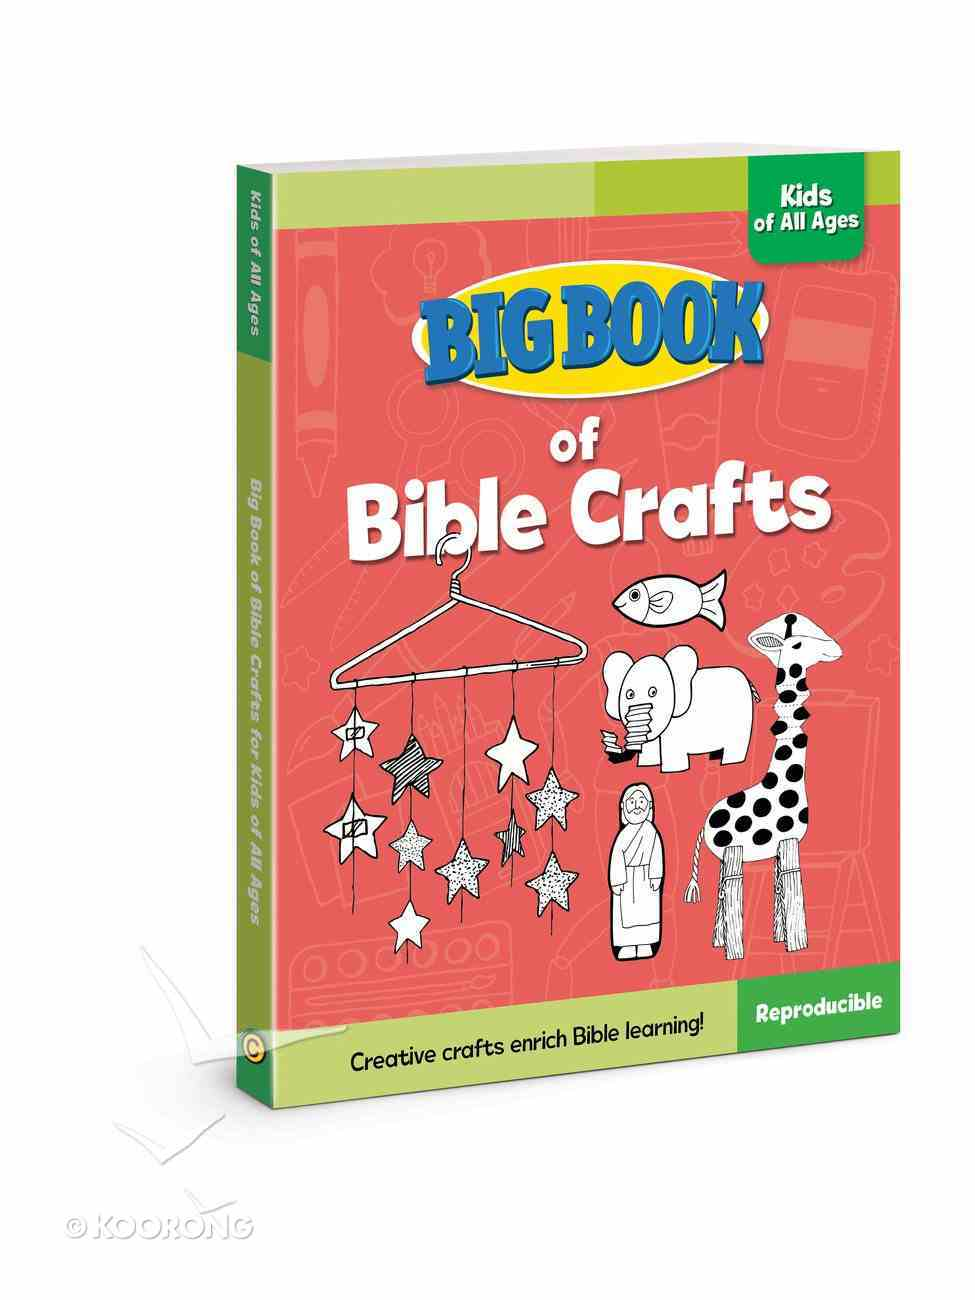 Big Book of Bible Crafts For Kids of All Ages (Reproducible) Paperback